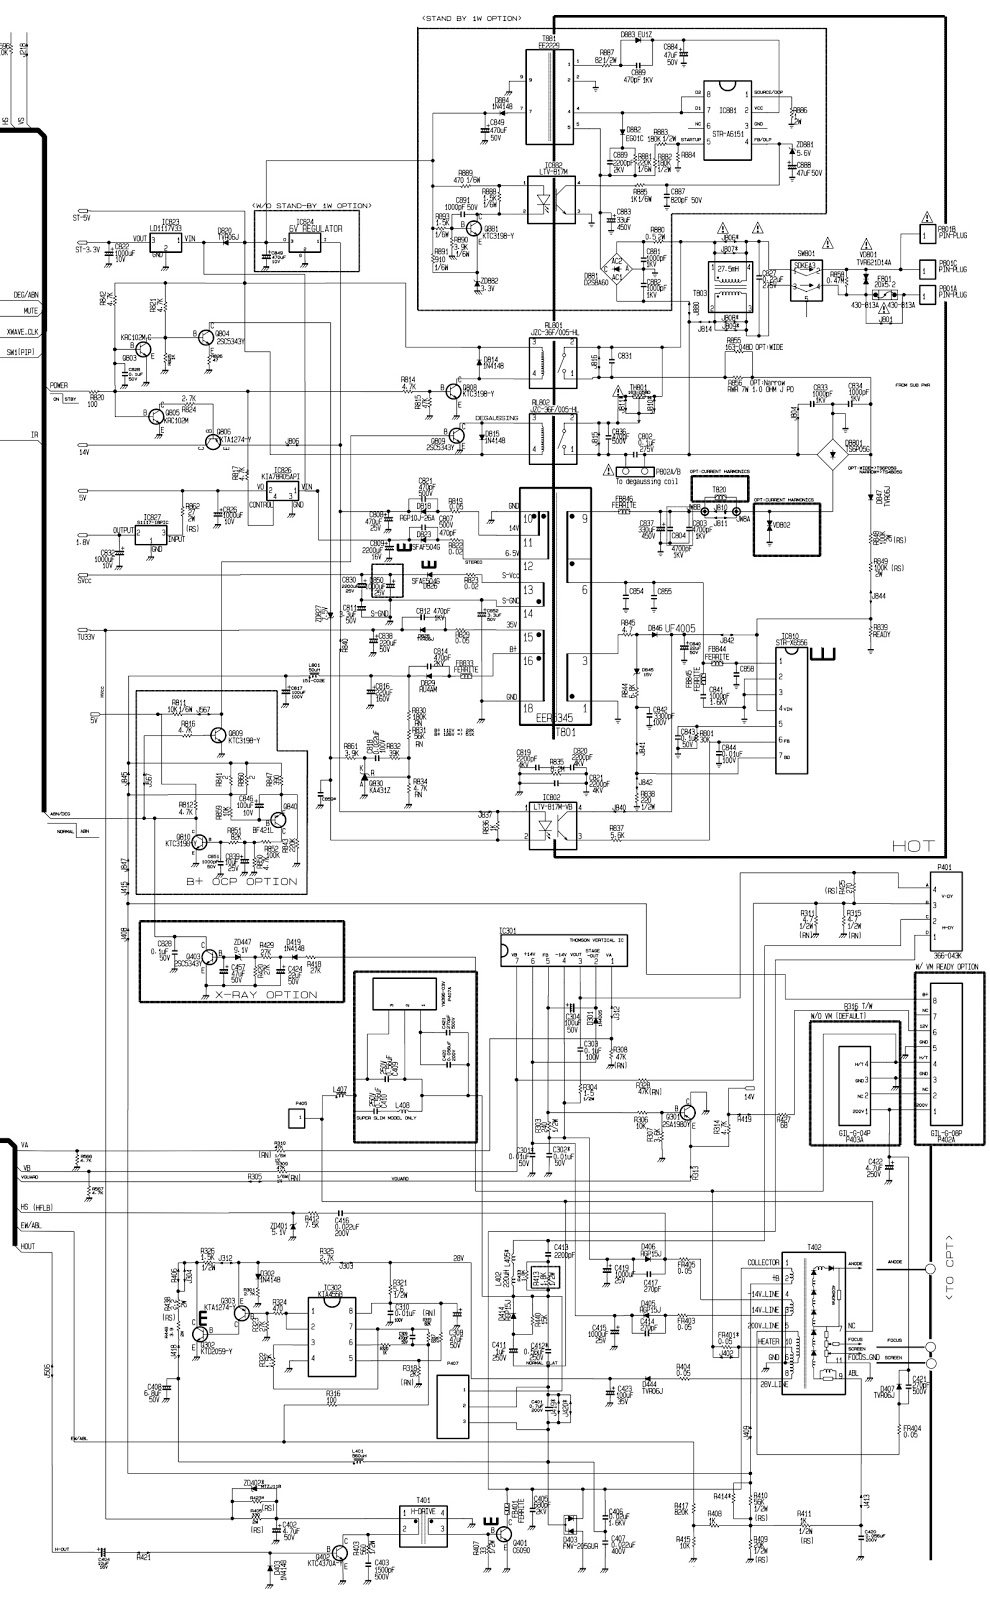 circuit diagram click on the schematic to magnify  [ 990 x 1600 Pixel ]